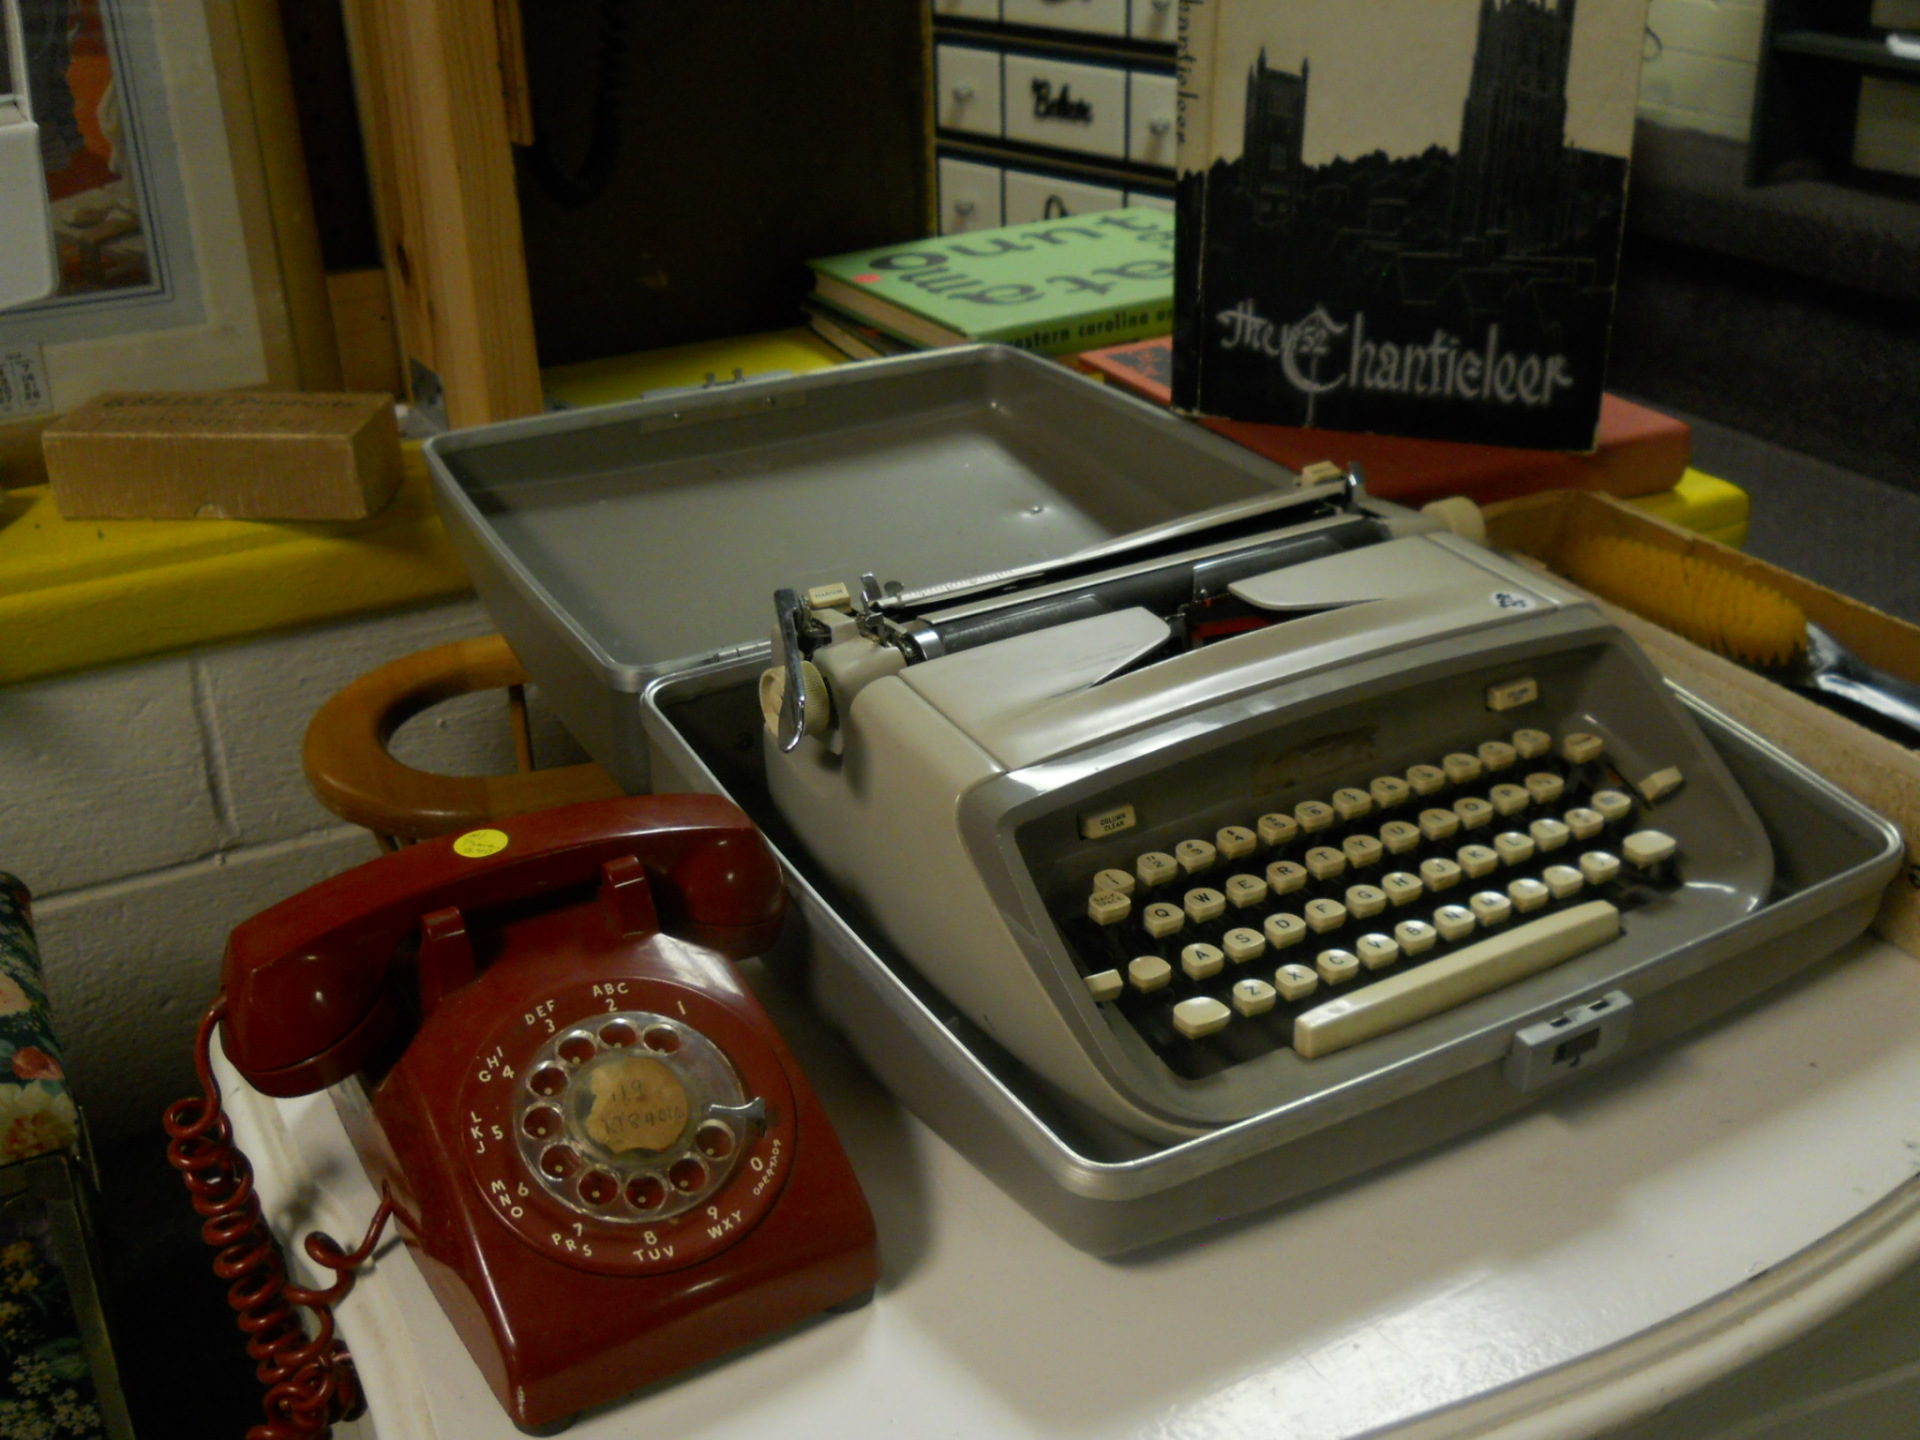 Rotary Phones and Typewriters